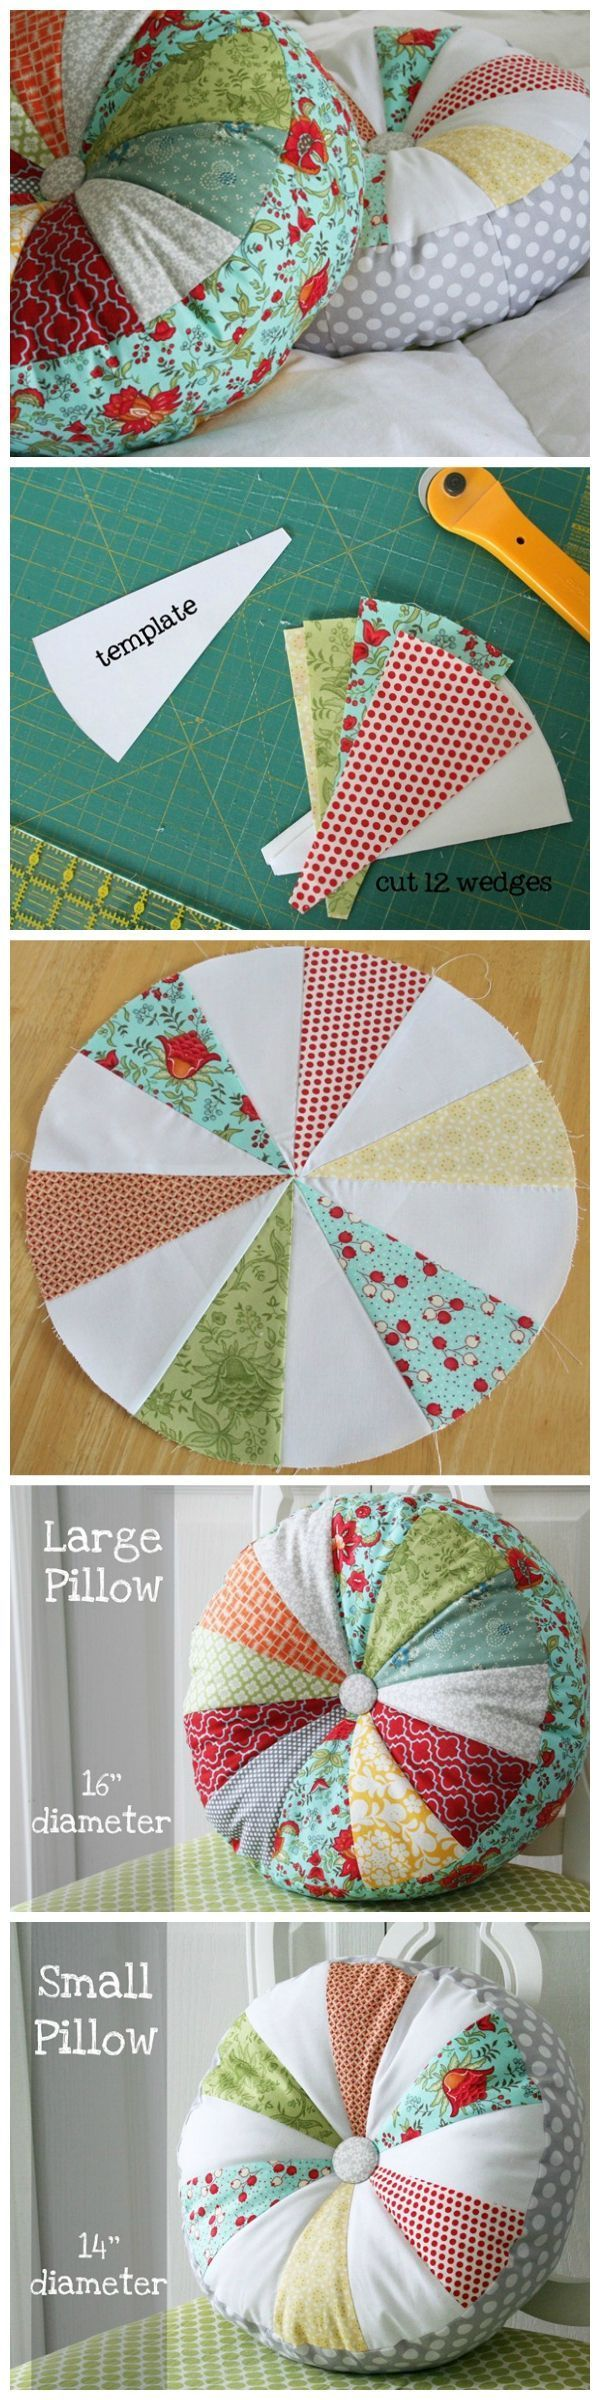 DIY Sprocket Pillows Tutorial